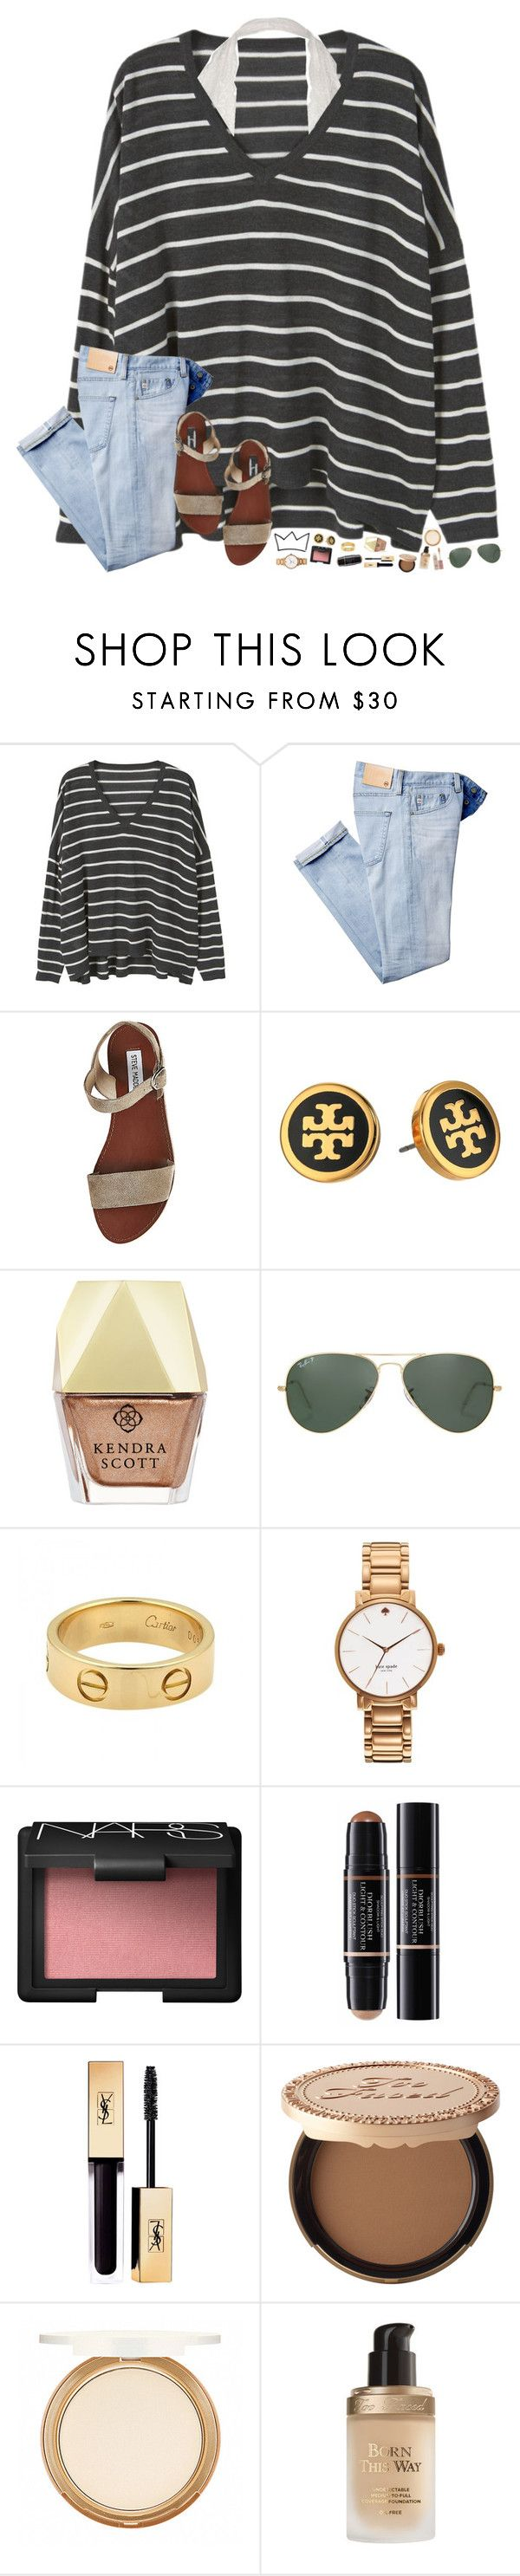 """confused."" by hopemarlee ❤ liked on Polyvore featuring MANGO, Steve Madden, Tory Burch, Kendra Scott, Ray-Ban, Cartier, Kate Spade, NARS Cosmetics, Christian Dior and Too Faced Cosmetics"